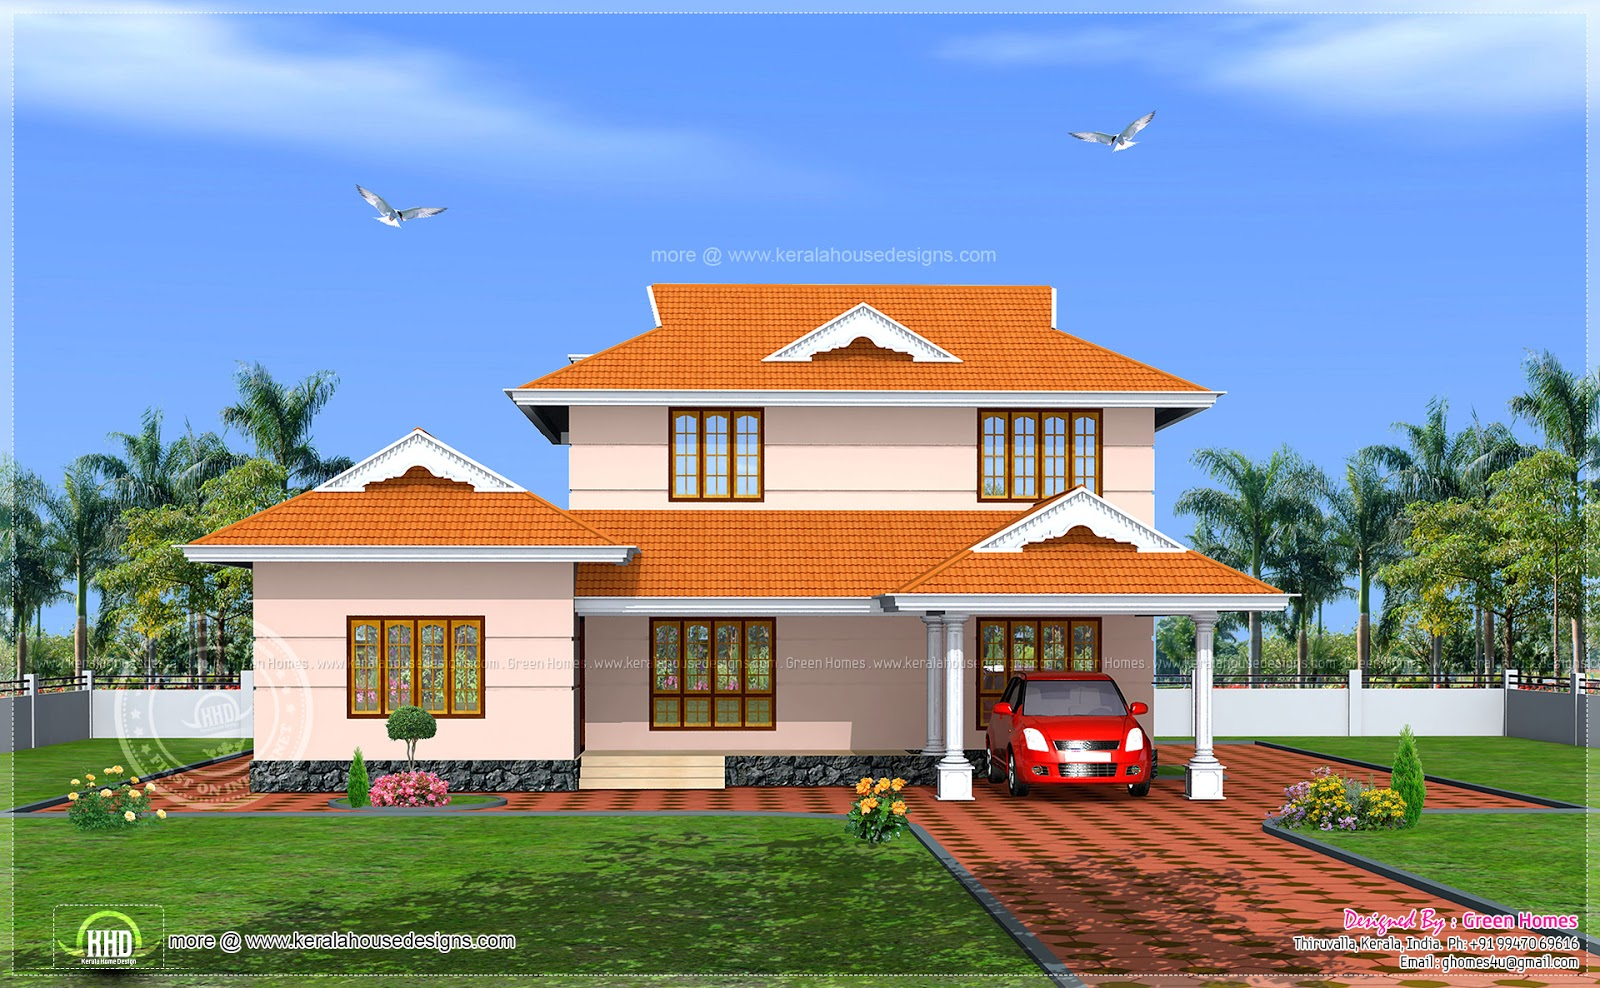 Kerala Model Home Plans: Sun City Grand Madera Floor Plan Del